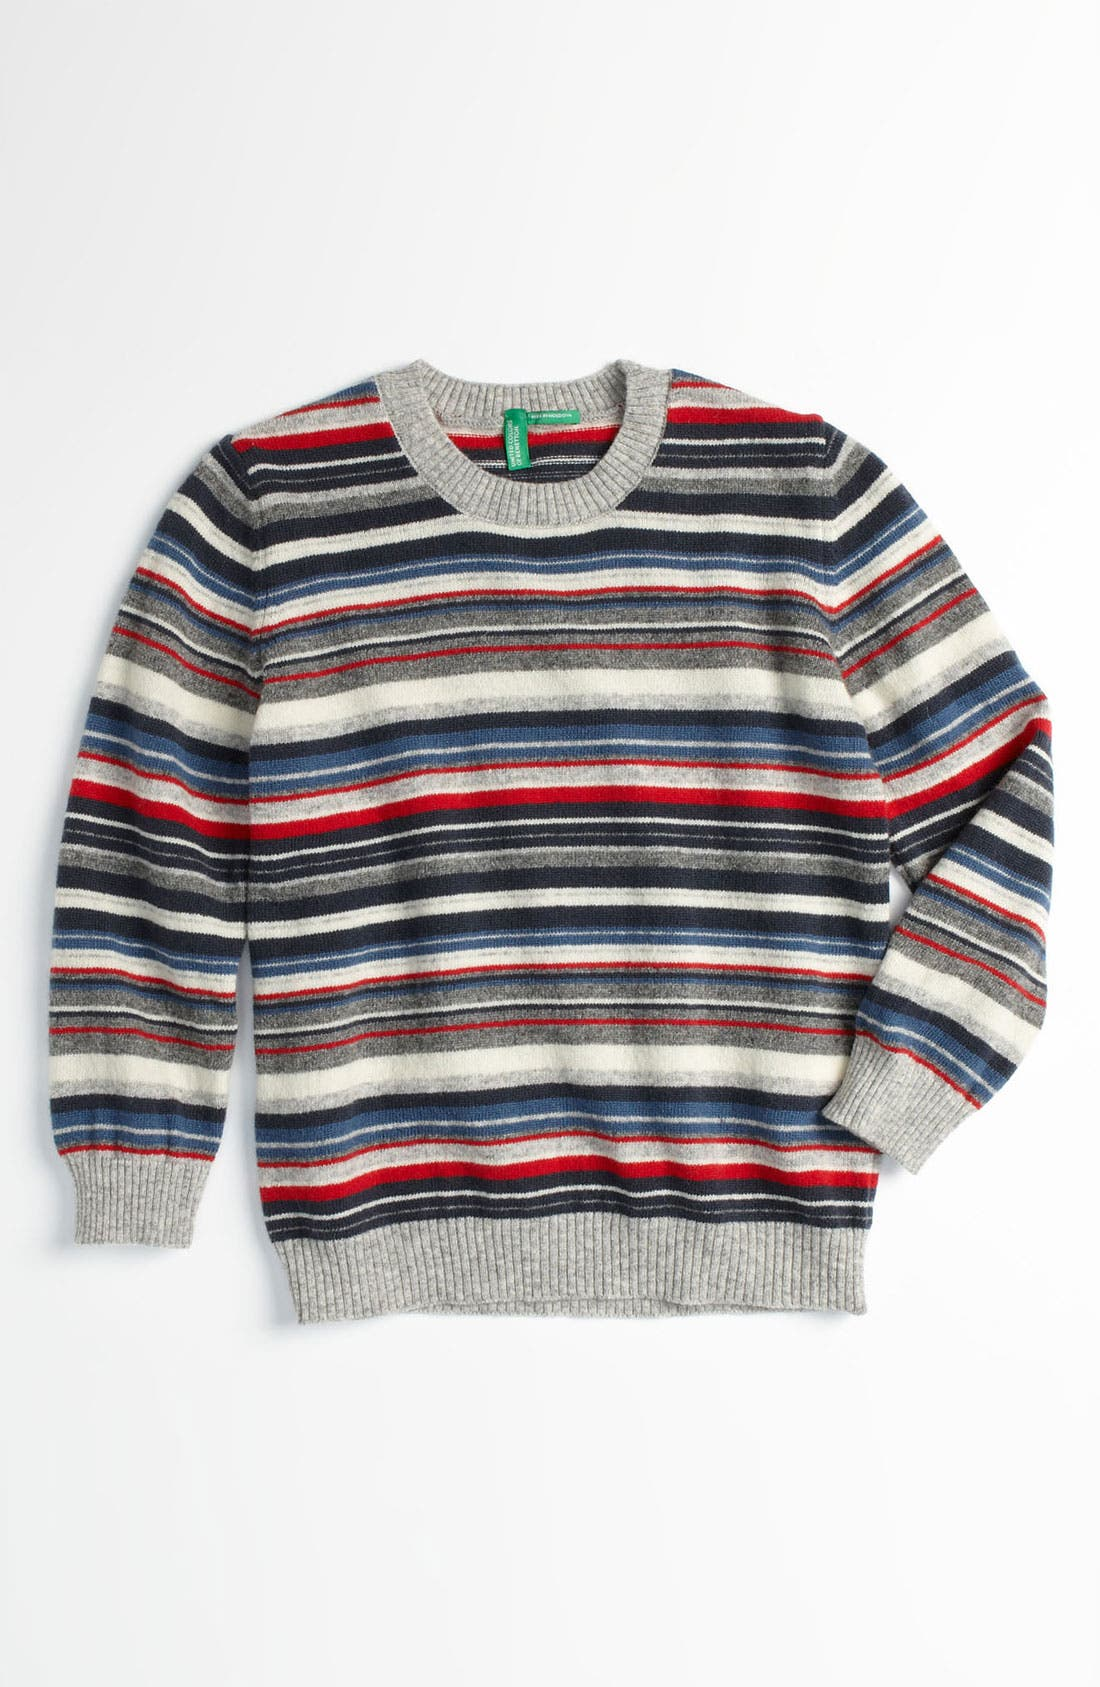 Main Image - United Colors of Benetton Kids Sweater (Toddler)